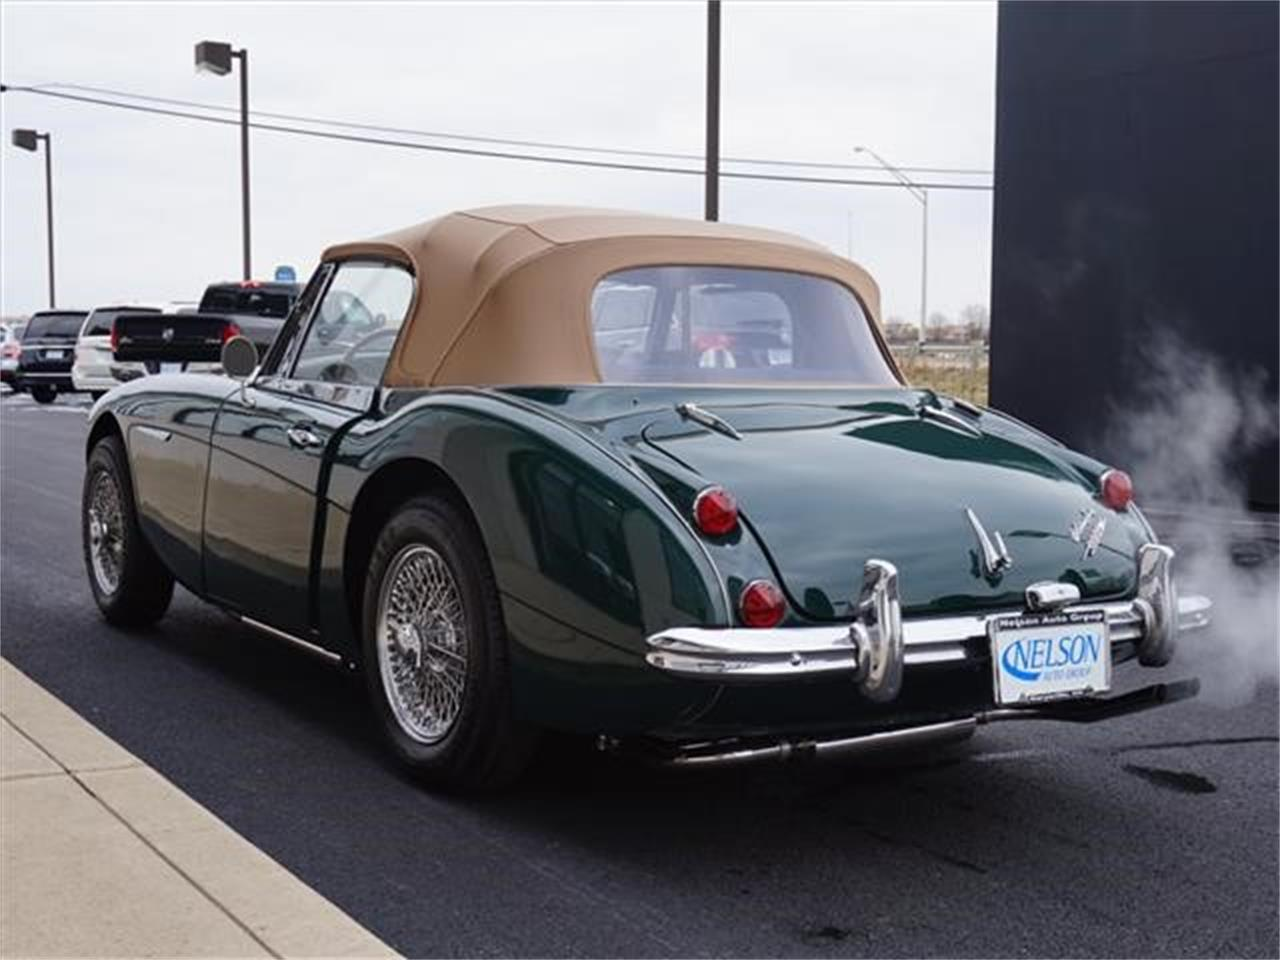 Large Picture of '67 Austin-Healey 3000 Mark III located in Marysville Ohio - $59,999.00 Offered by Nelson Automotive, Ltd. - LRXT